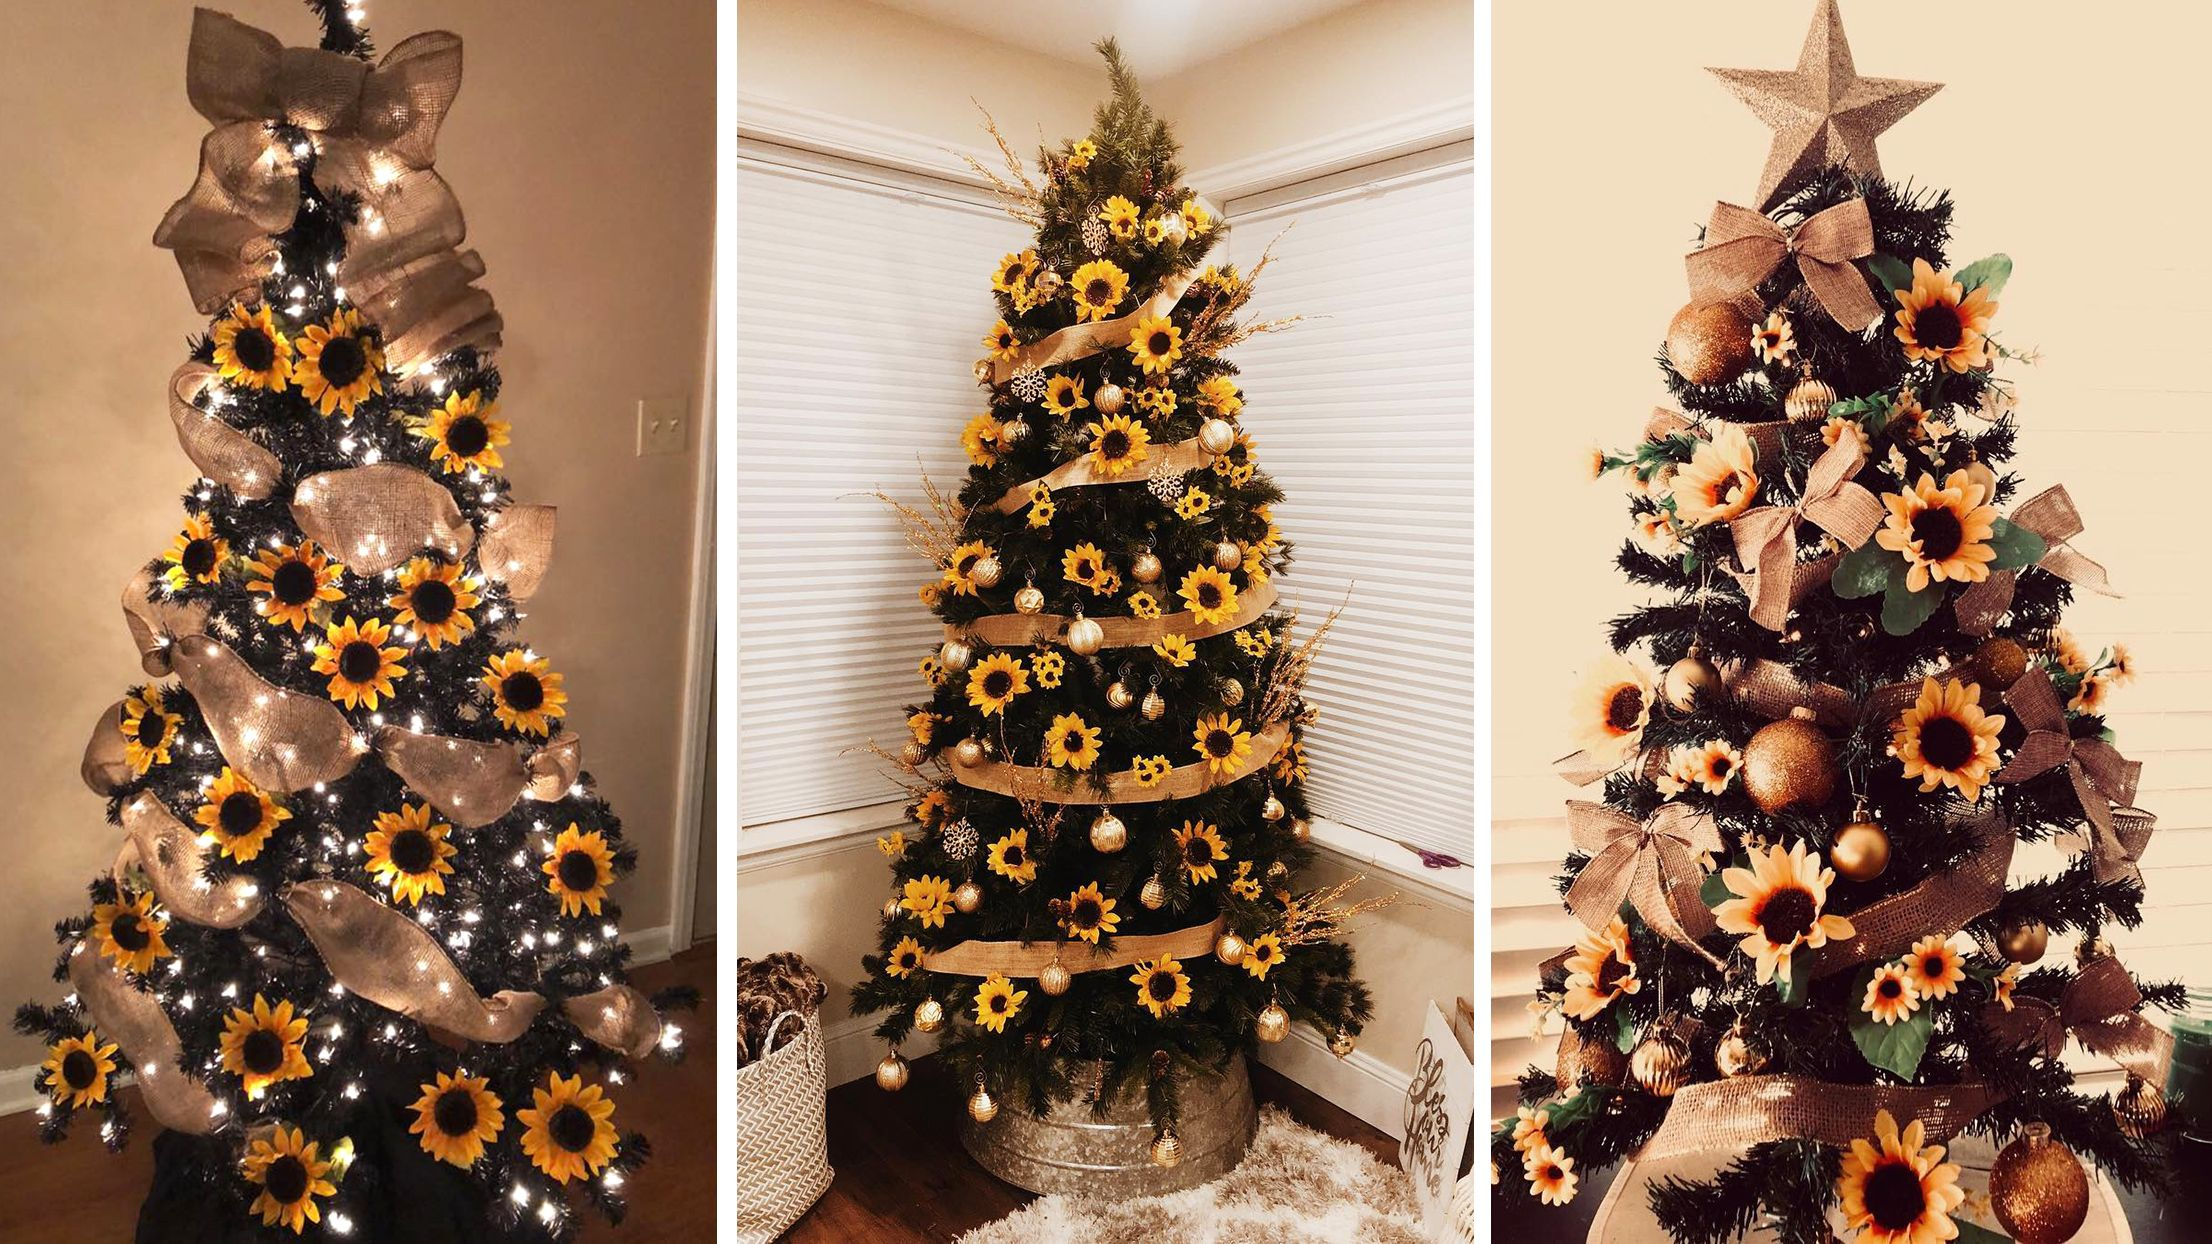 According to Pinterest, Sunflower Trees Are the Latest Christmas Trend #sunflowerchristmastree